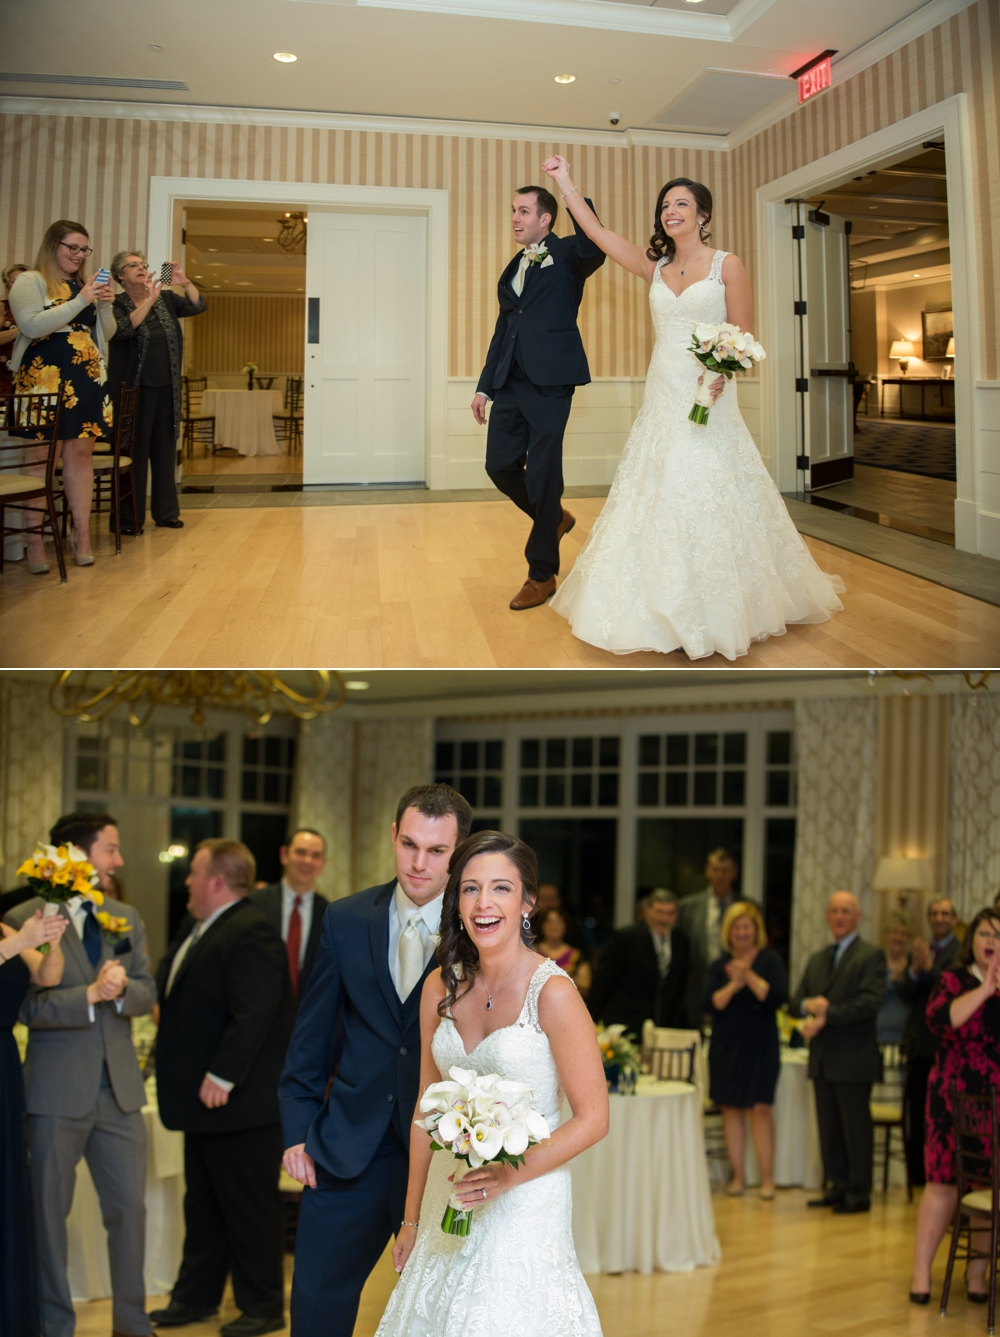 BeauportHotel_Wedding_Brittany&Mike_0044.jpg